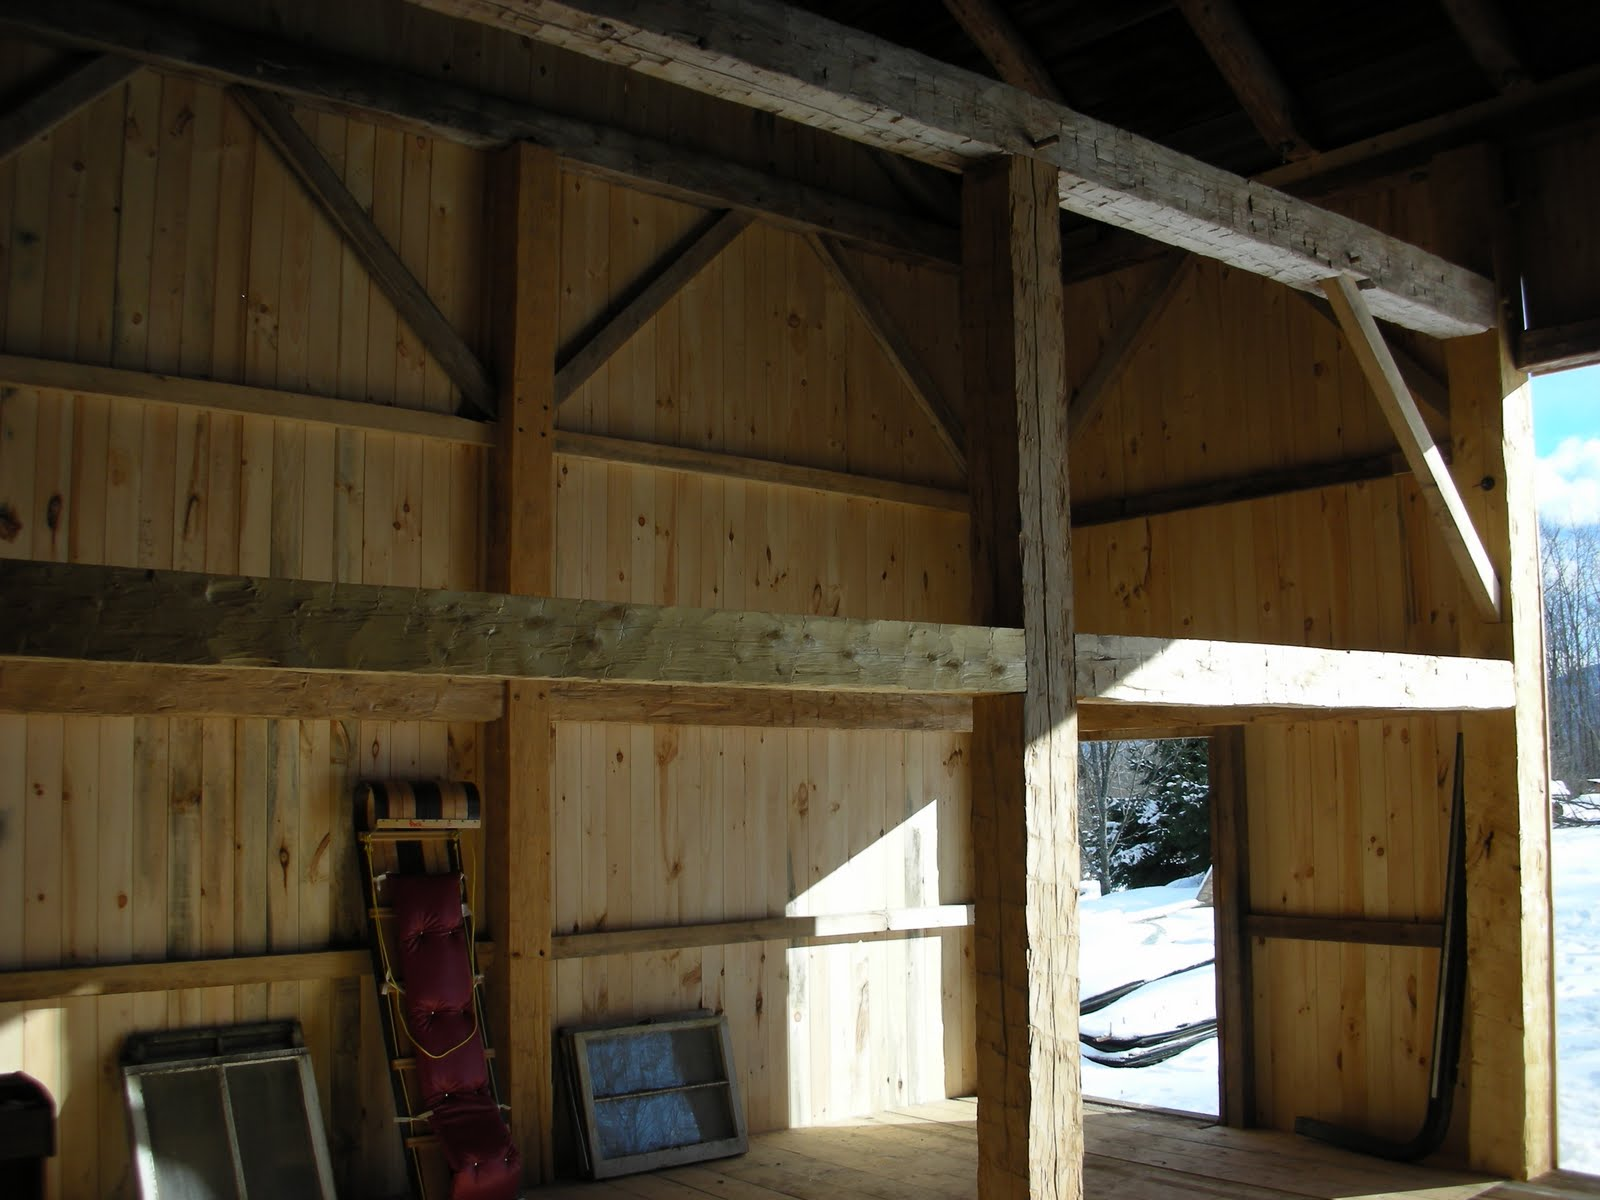 The gable wall is complete.  The bent in the foreground had the beech post replaced due to severe powder post beetle damage.  All of the posts and all but one of the girts that can be seen in this photo are new.